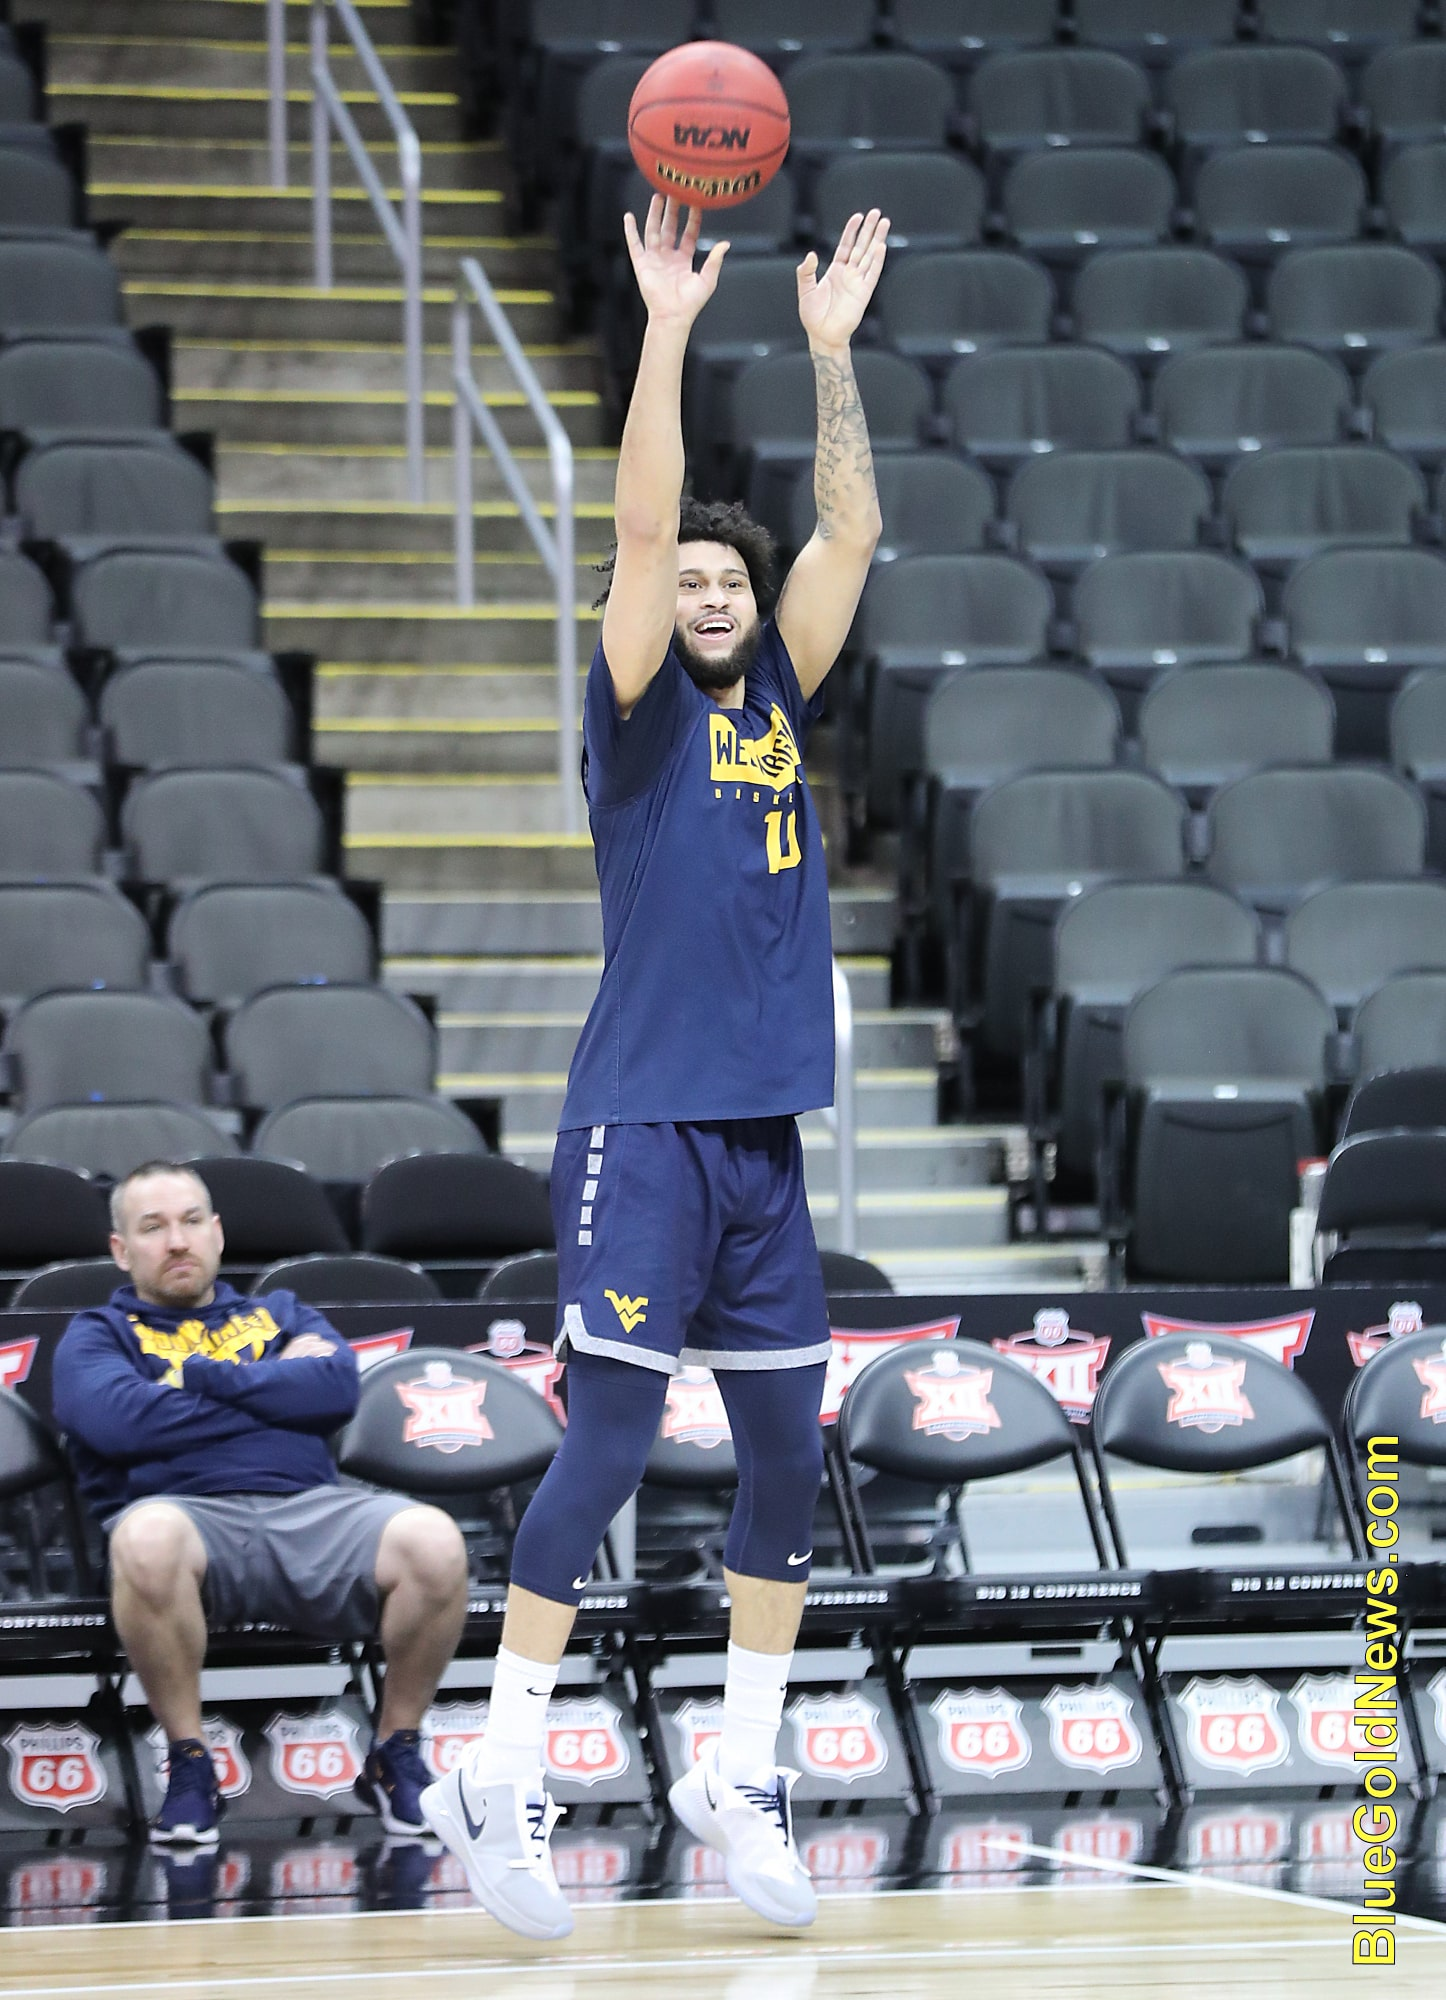 West Virginia guard Jermaine Haley has fun as he launches a shot from the corner